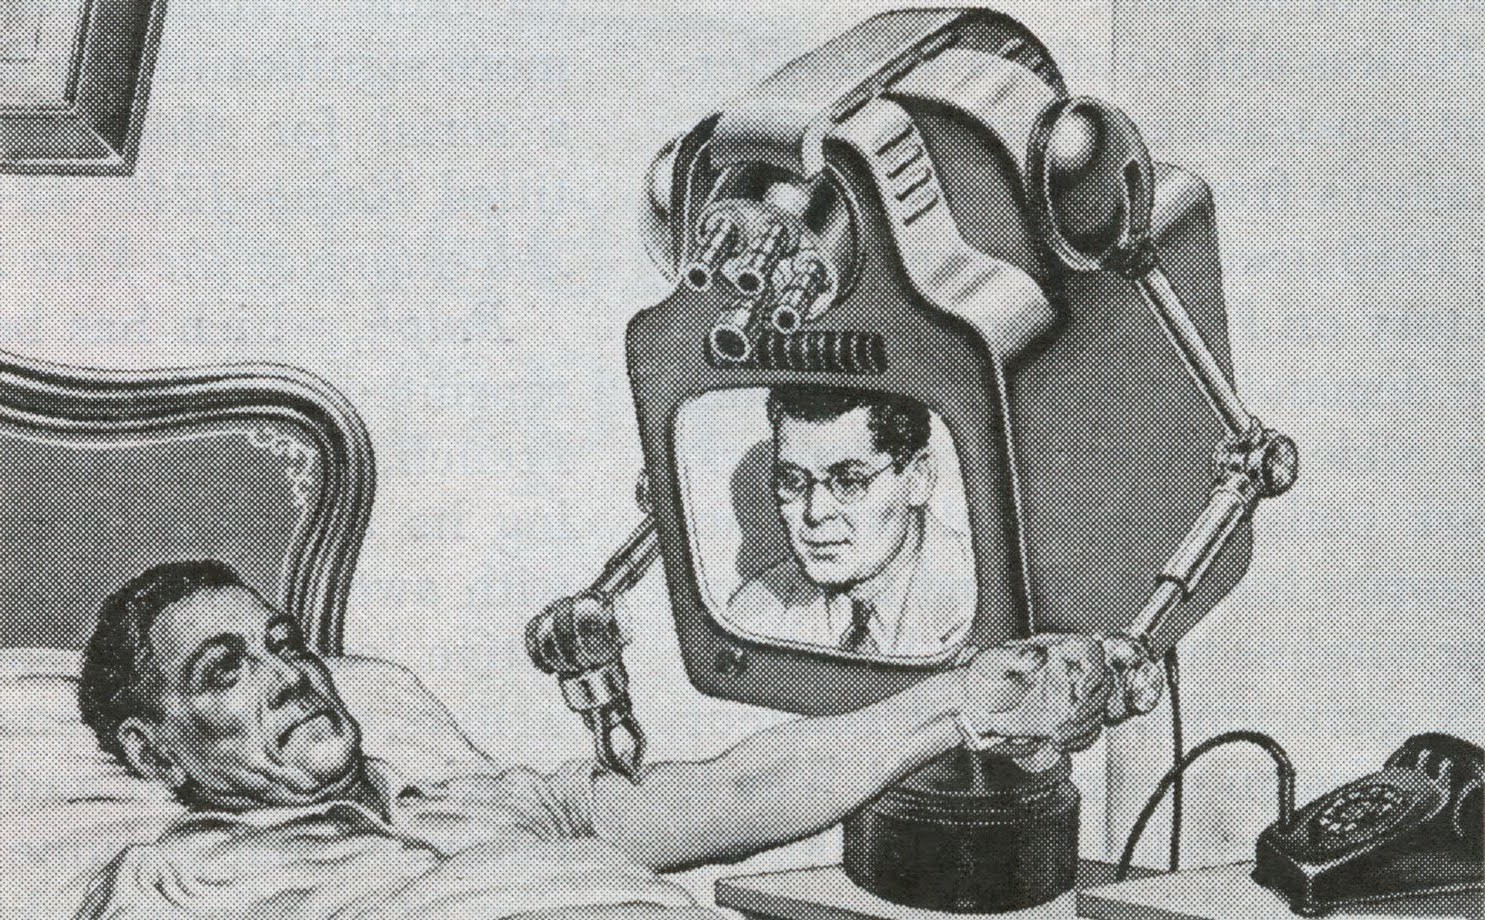 """The Teledoctor  –  Teledoctoring replaces inefficient house calls."" Television, 1955."